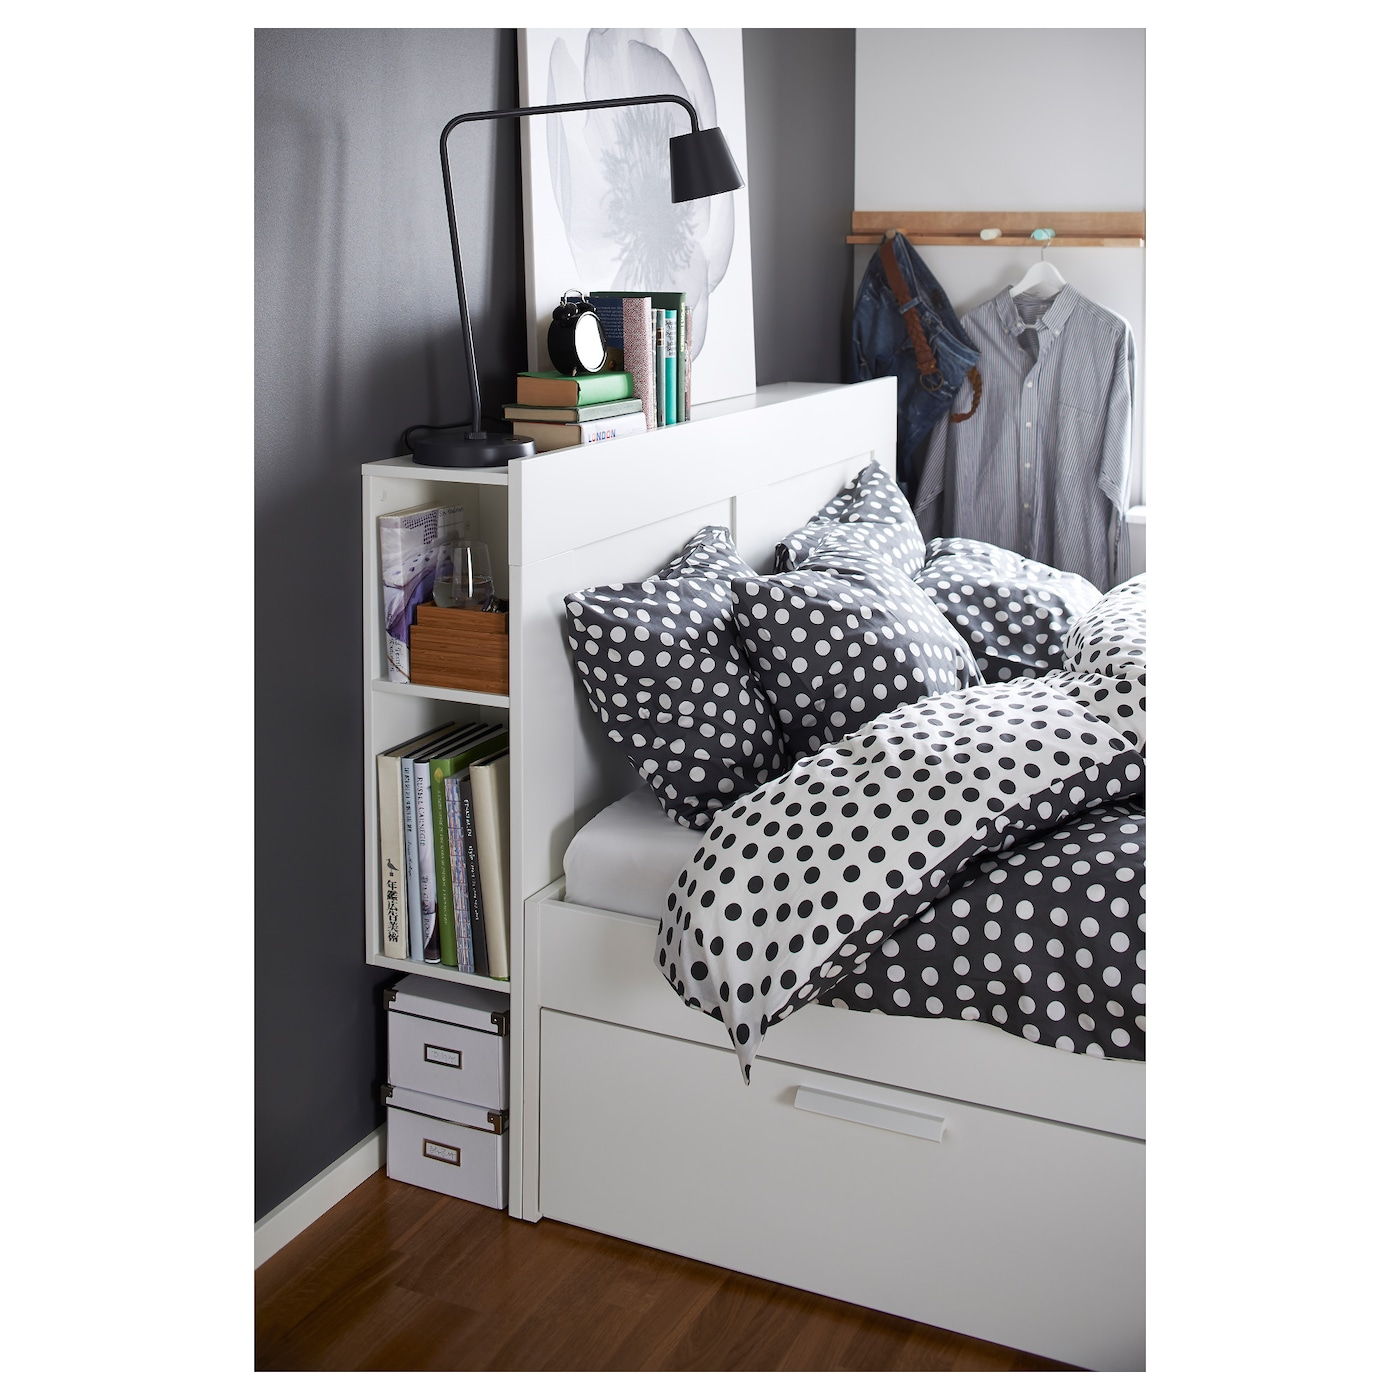 brimnes cadre de lit rangement t te de lit blanc 160 x 200 cm ikea. Black Bedroom Furniture Sets. Home Design Ideas